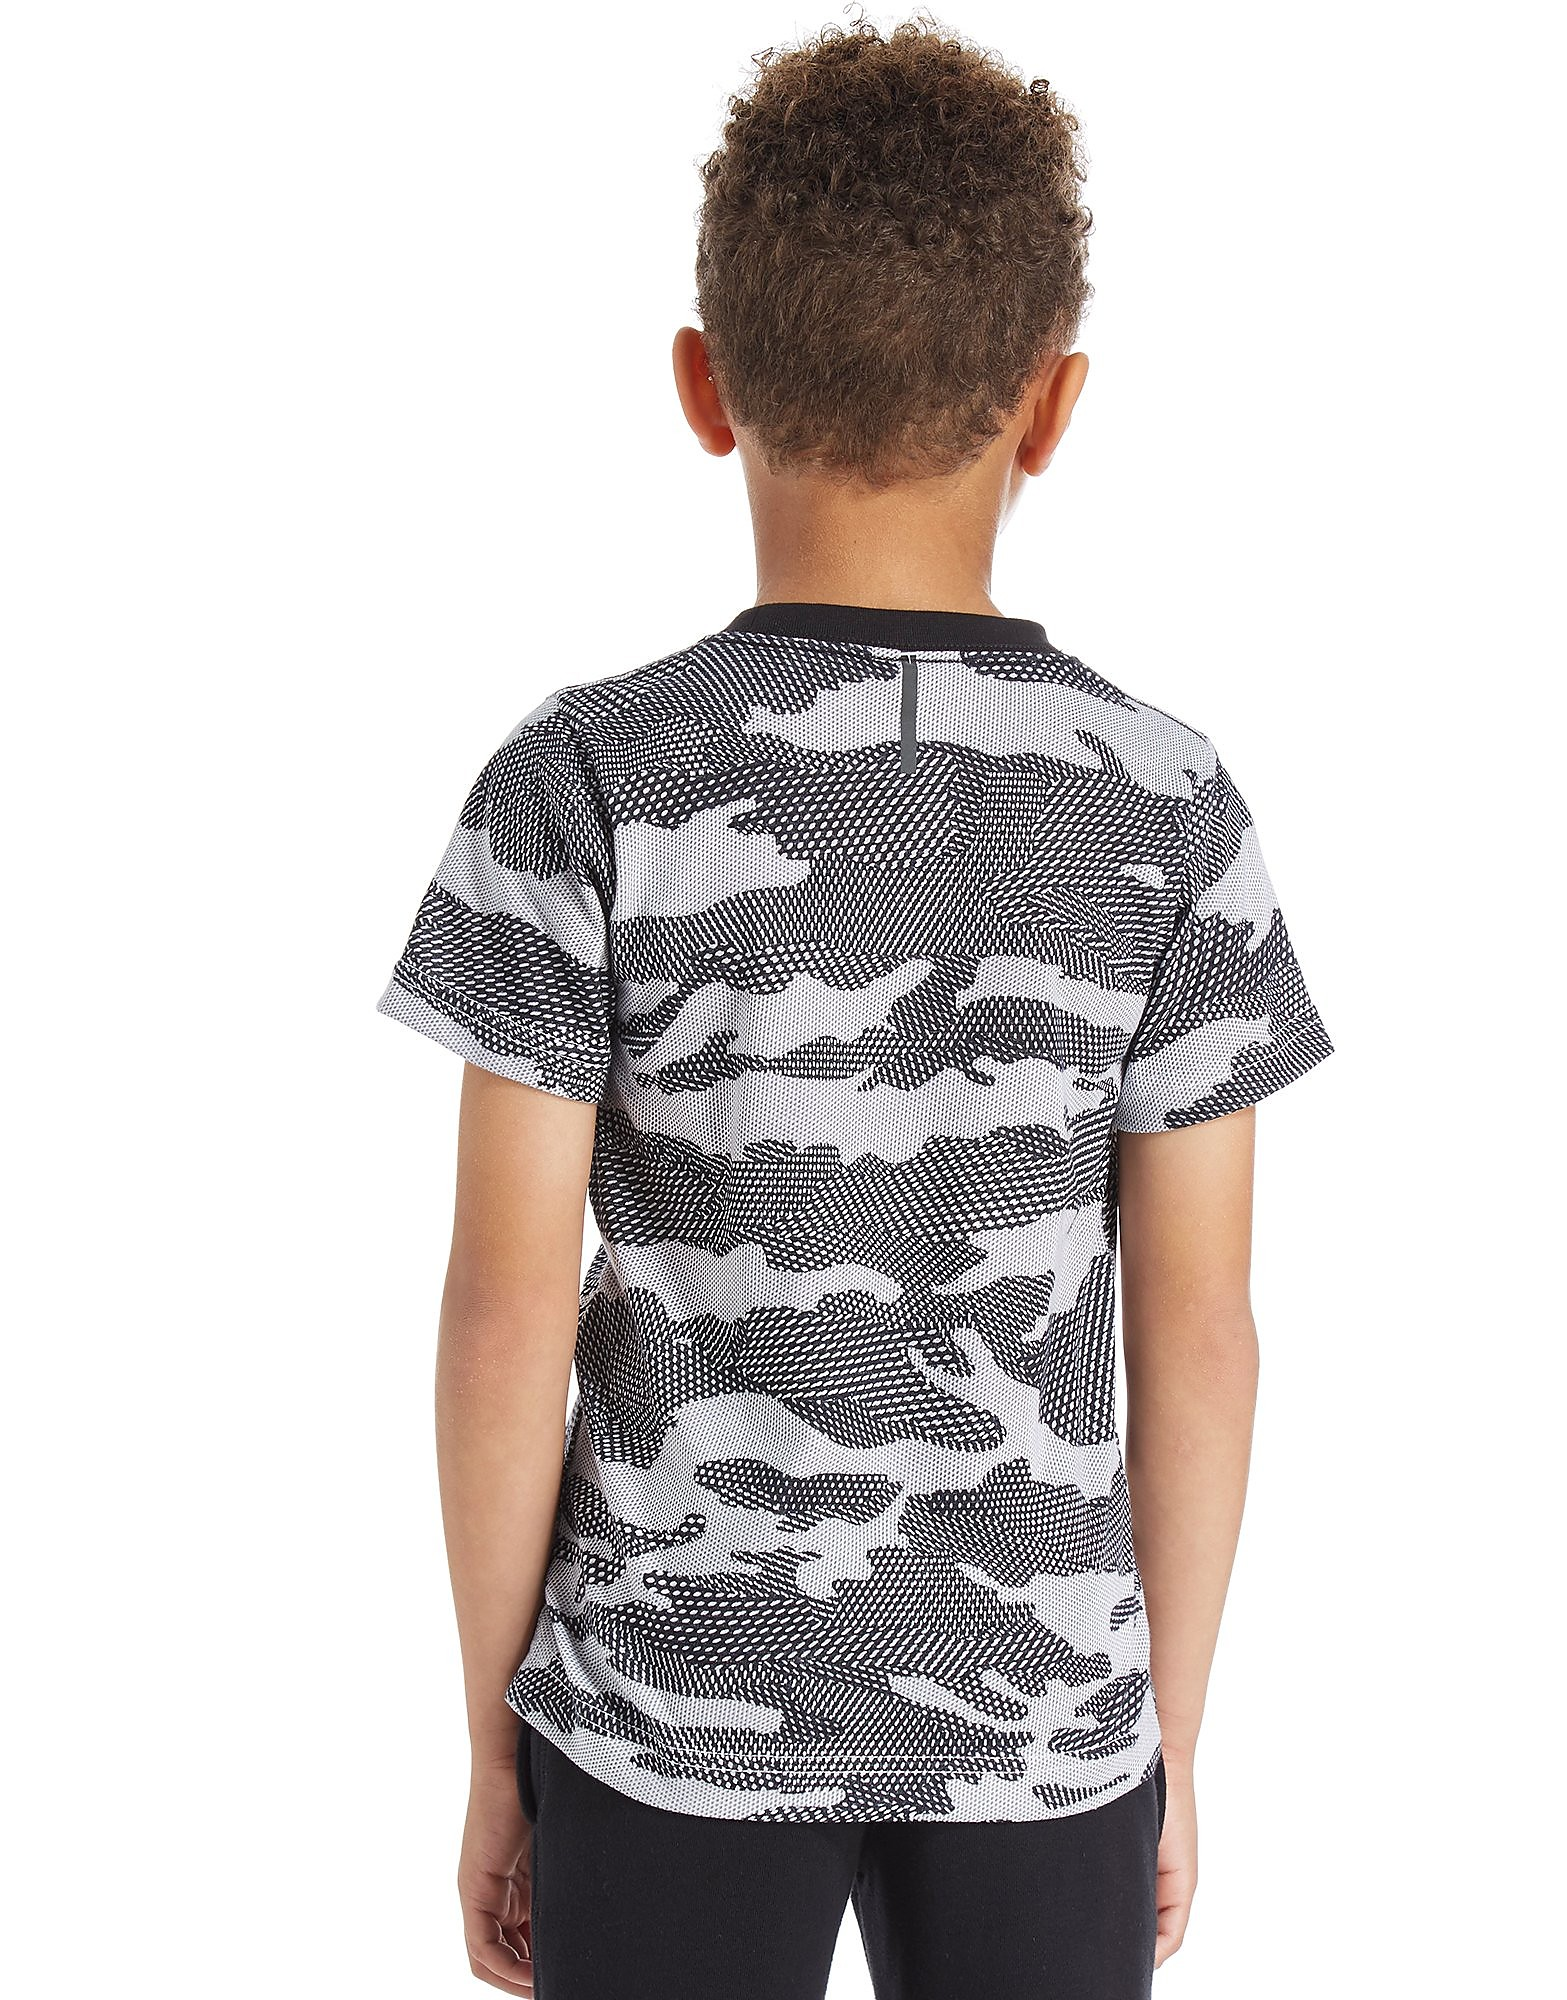 Nike All Over Print T-Shirt Children